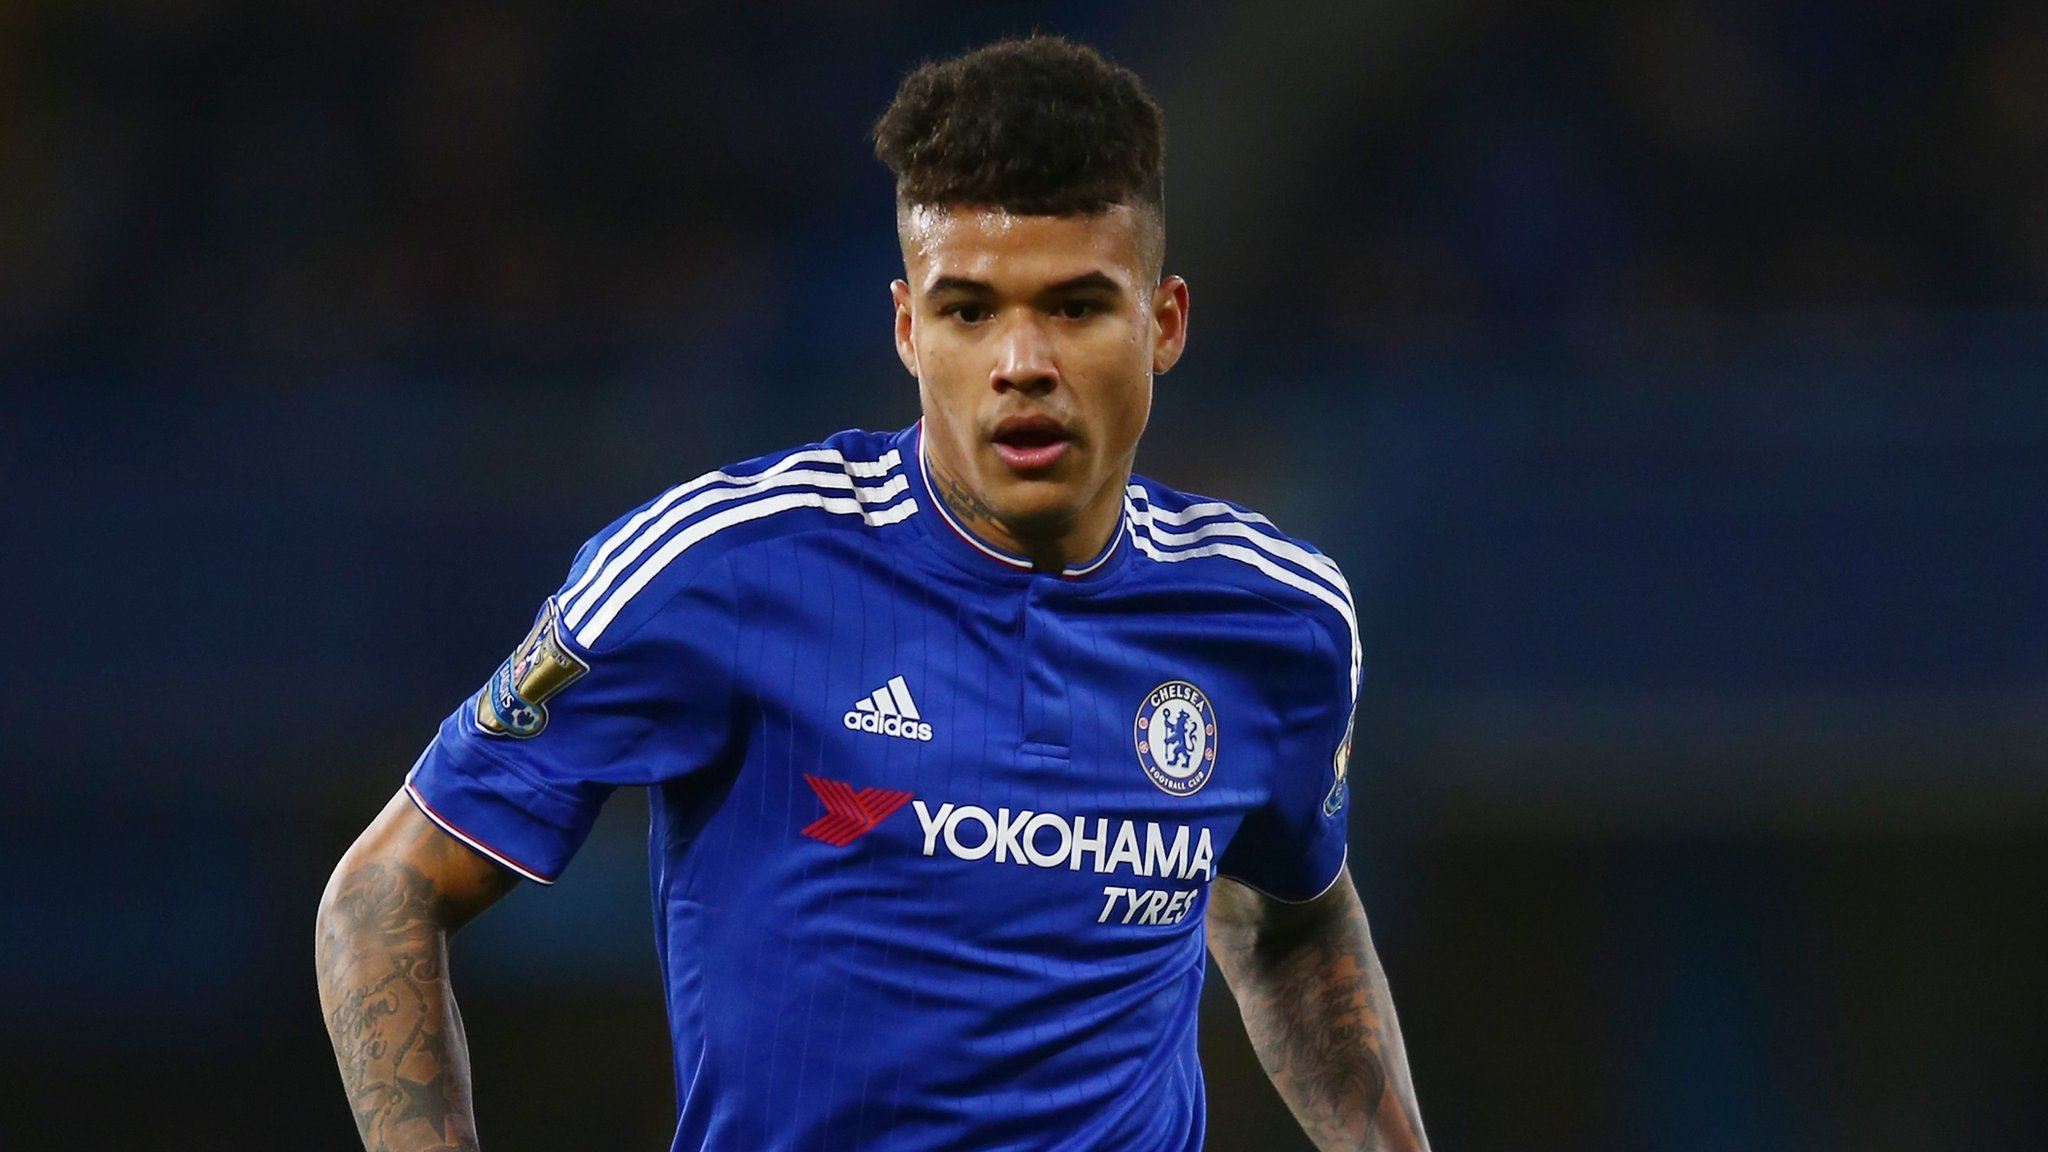 Chelsea 'solemnly' apologise for Kenedy comments